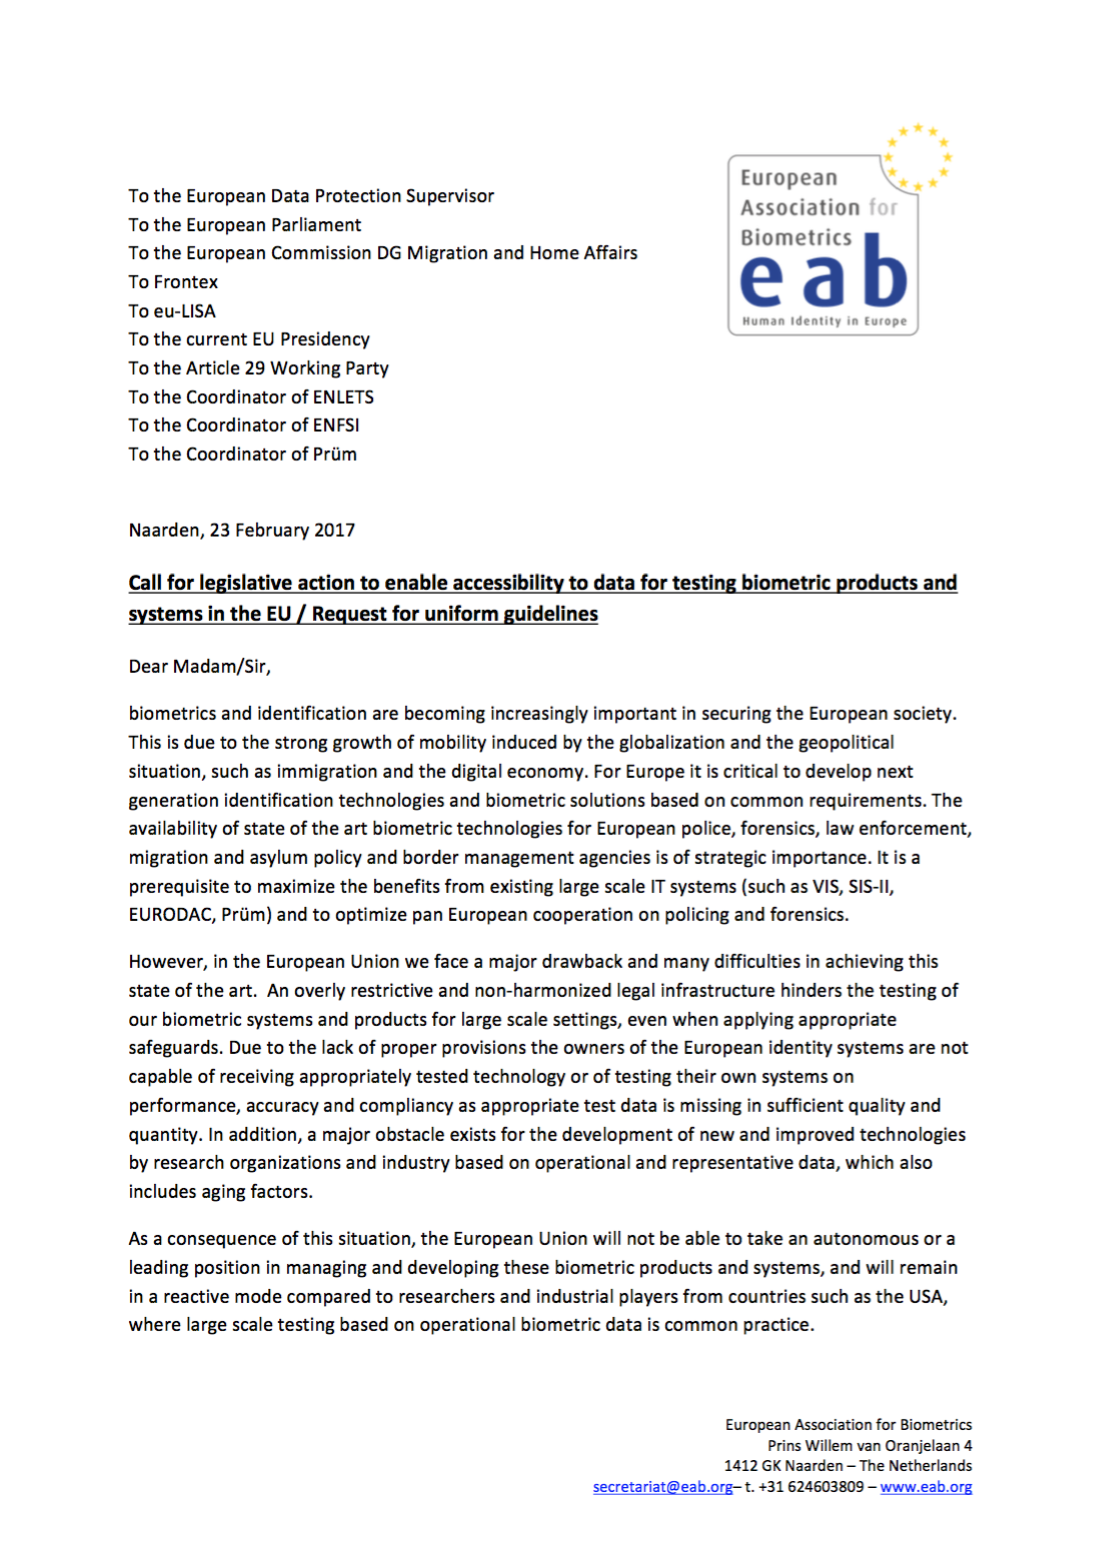 [Illustration] EAB Letter on Biometric Data in EU